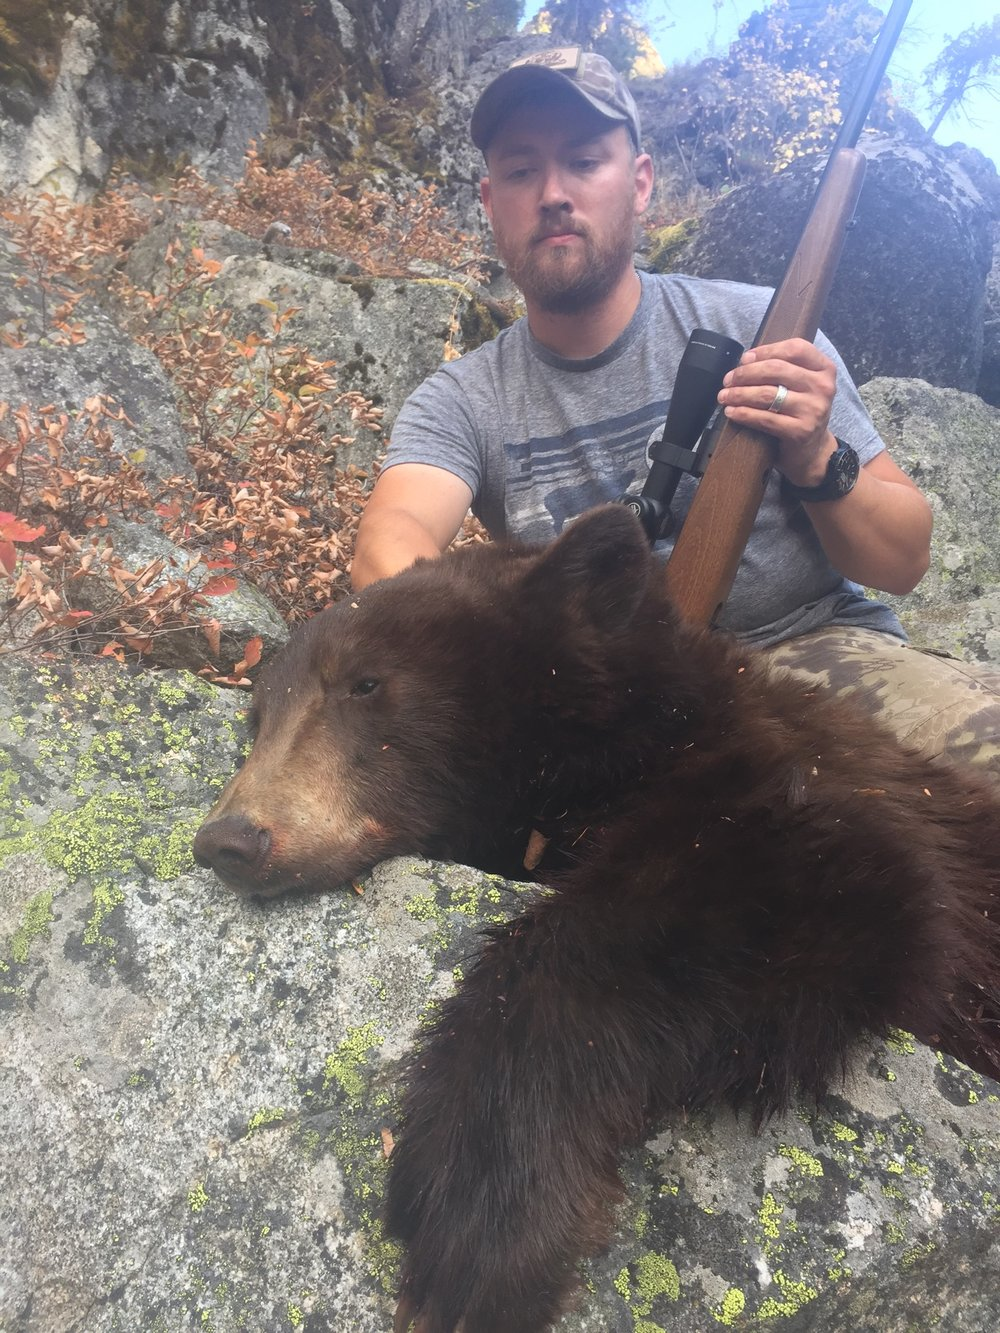 """...there is something different about shooting a bear from a deer. I thought of my family and thought of the meat I would be able to put on our table by taking this animal's life. I put the crosshairs back on the bear's chest, it was facing me, I squeezed the trigger."""